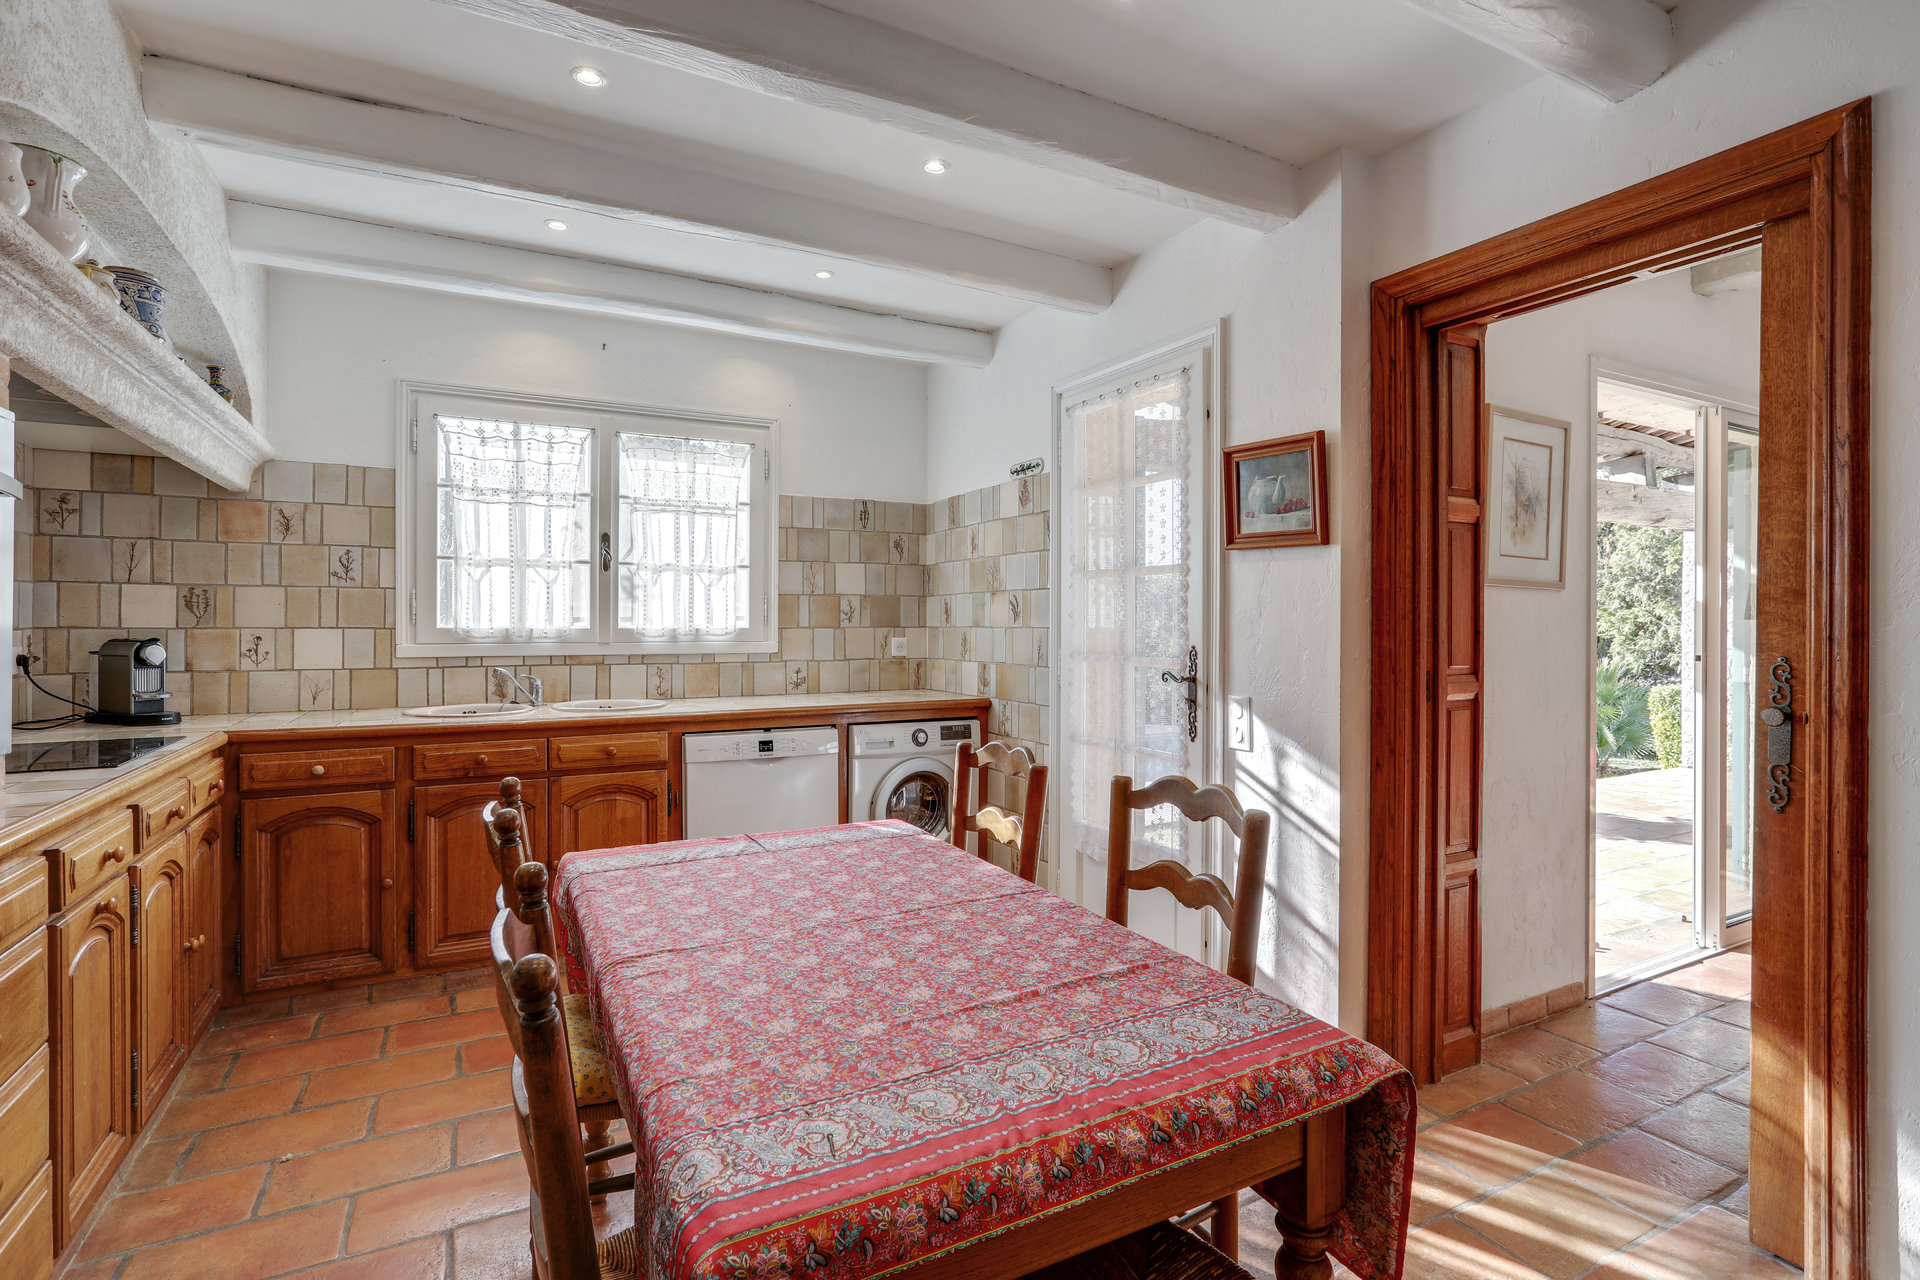 oint sole agent - Biot  Saint-Julien - Charming and sunny family home with pool - Walking distance to the village